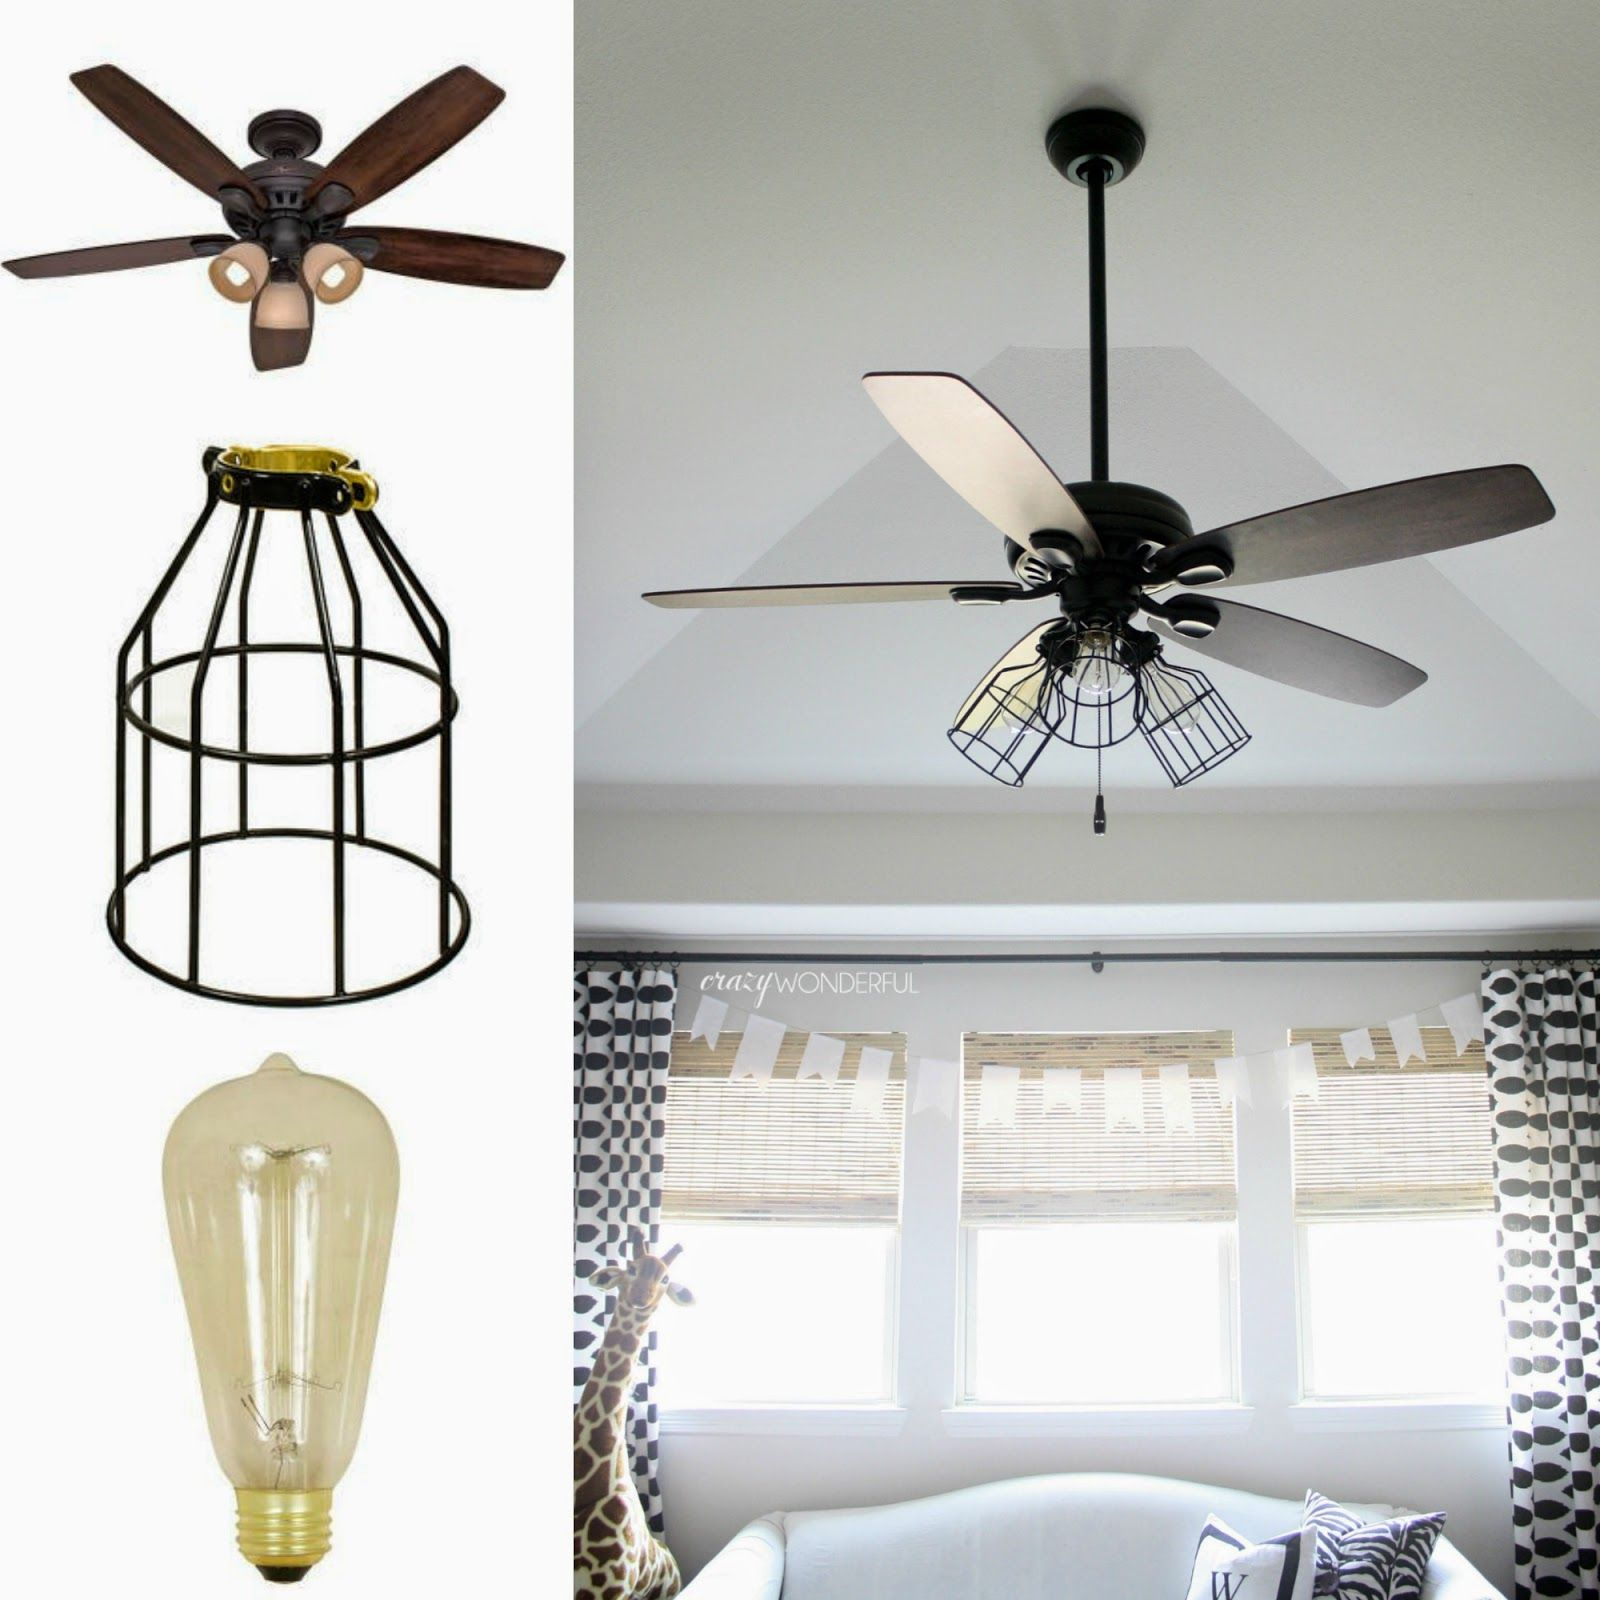 Crazy Wonderful DIY Cage Light Ceiling Fan Crazy Wonderful Blog - Kitchen ceiling fans without lights